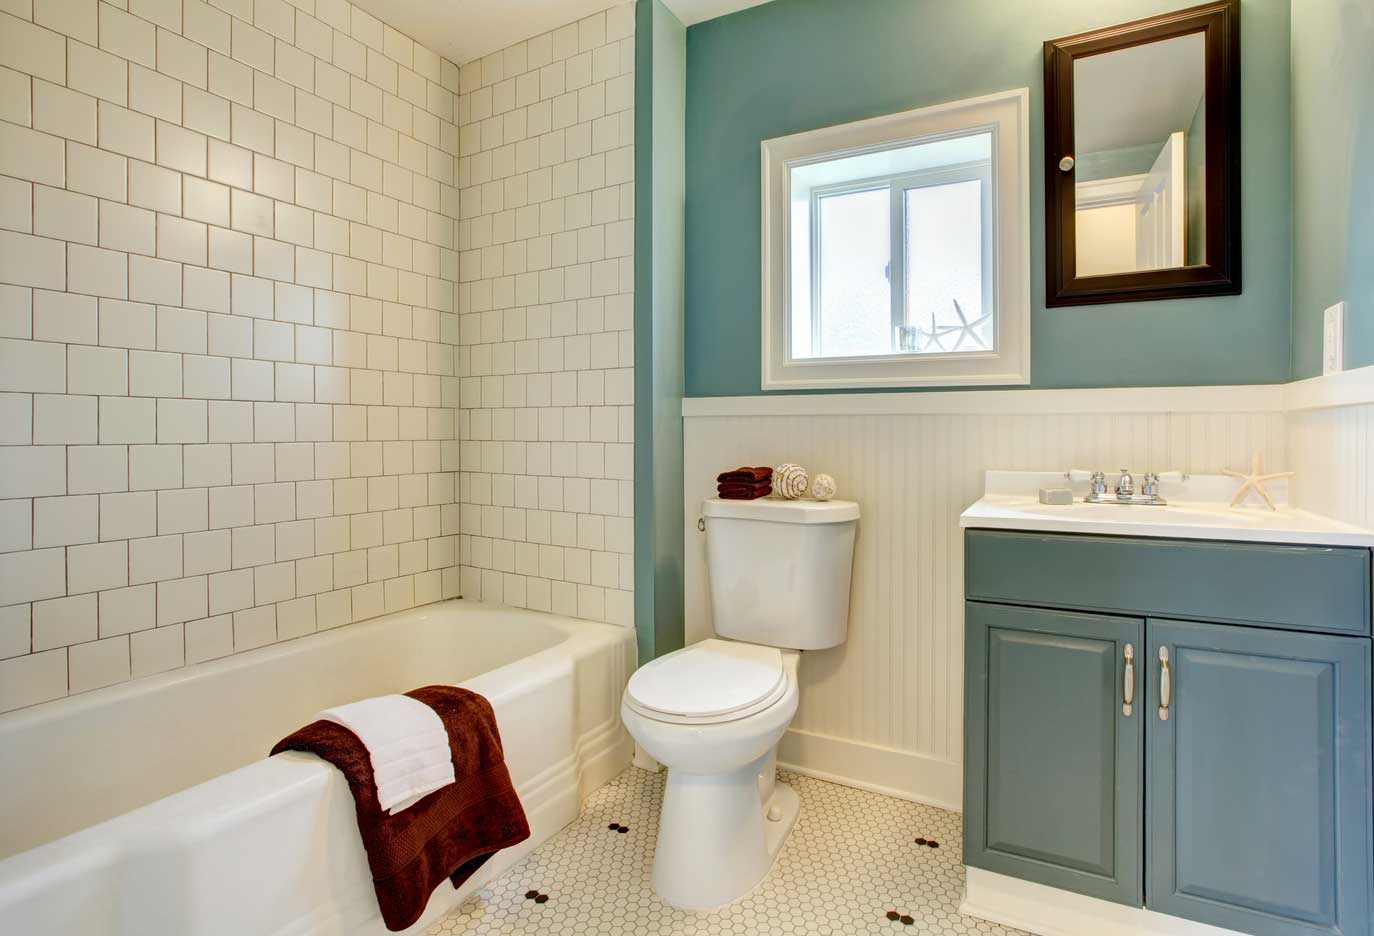 How To Make A Fabulous Frame For Your Bathroom Mirror Cabinet Now